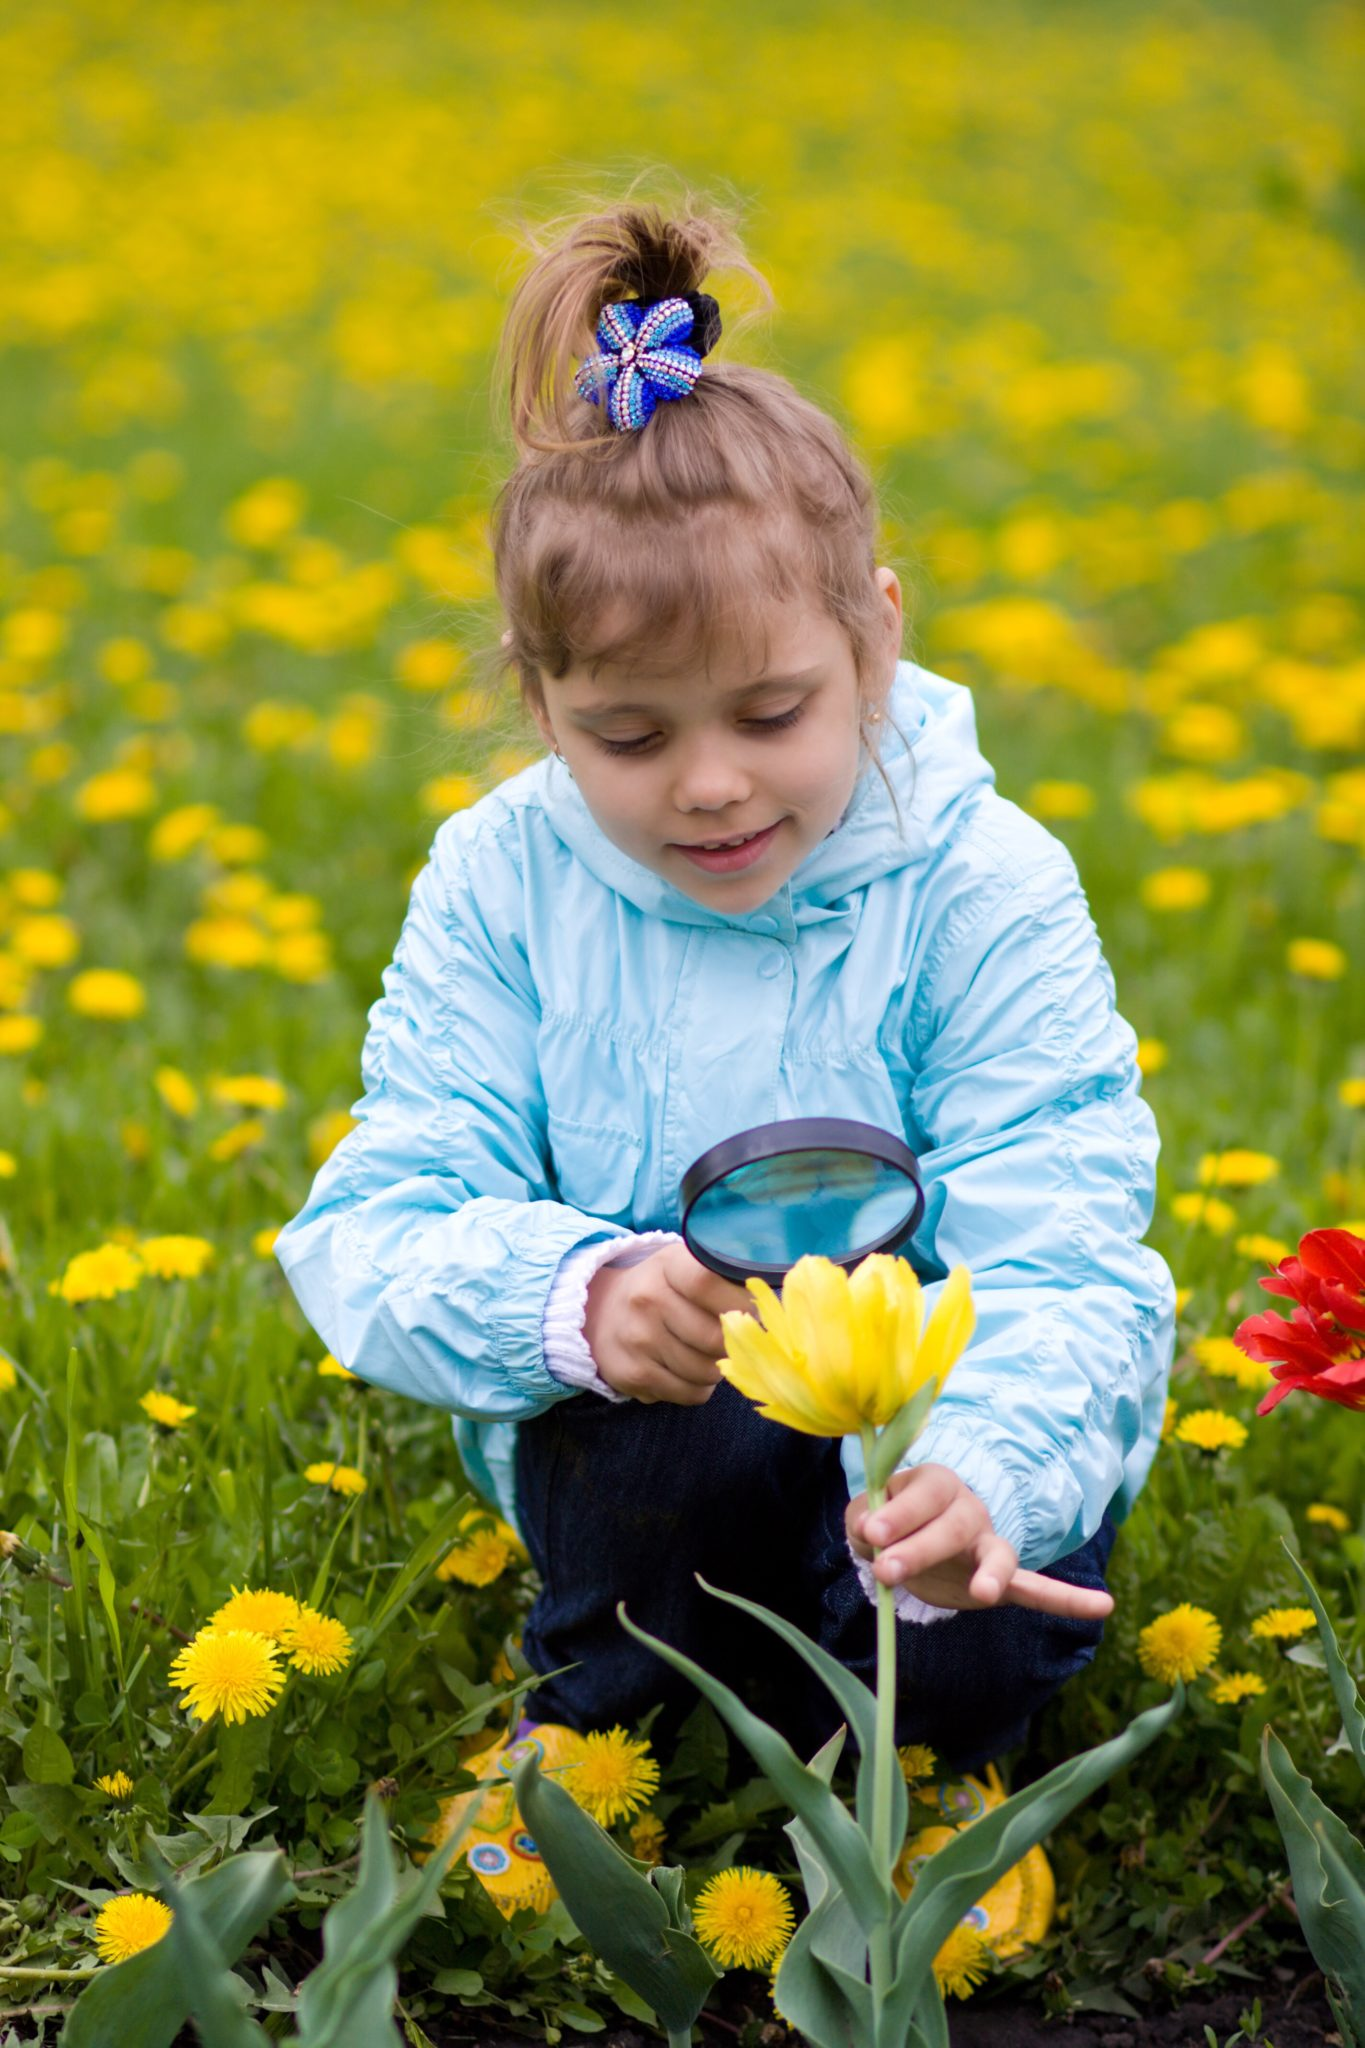 Girl looking at flower through magnifying glass.